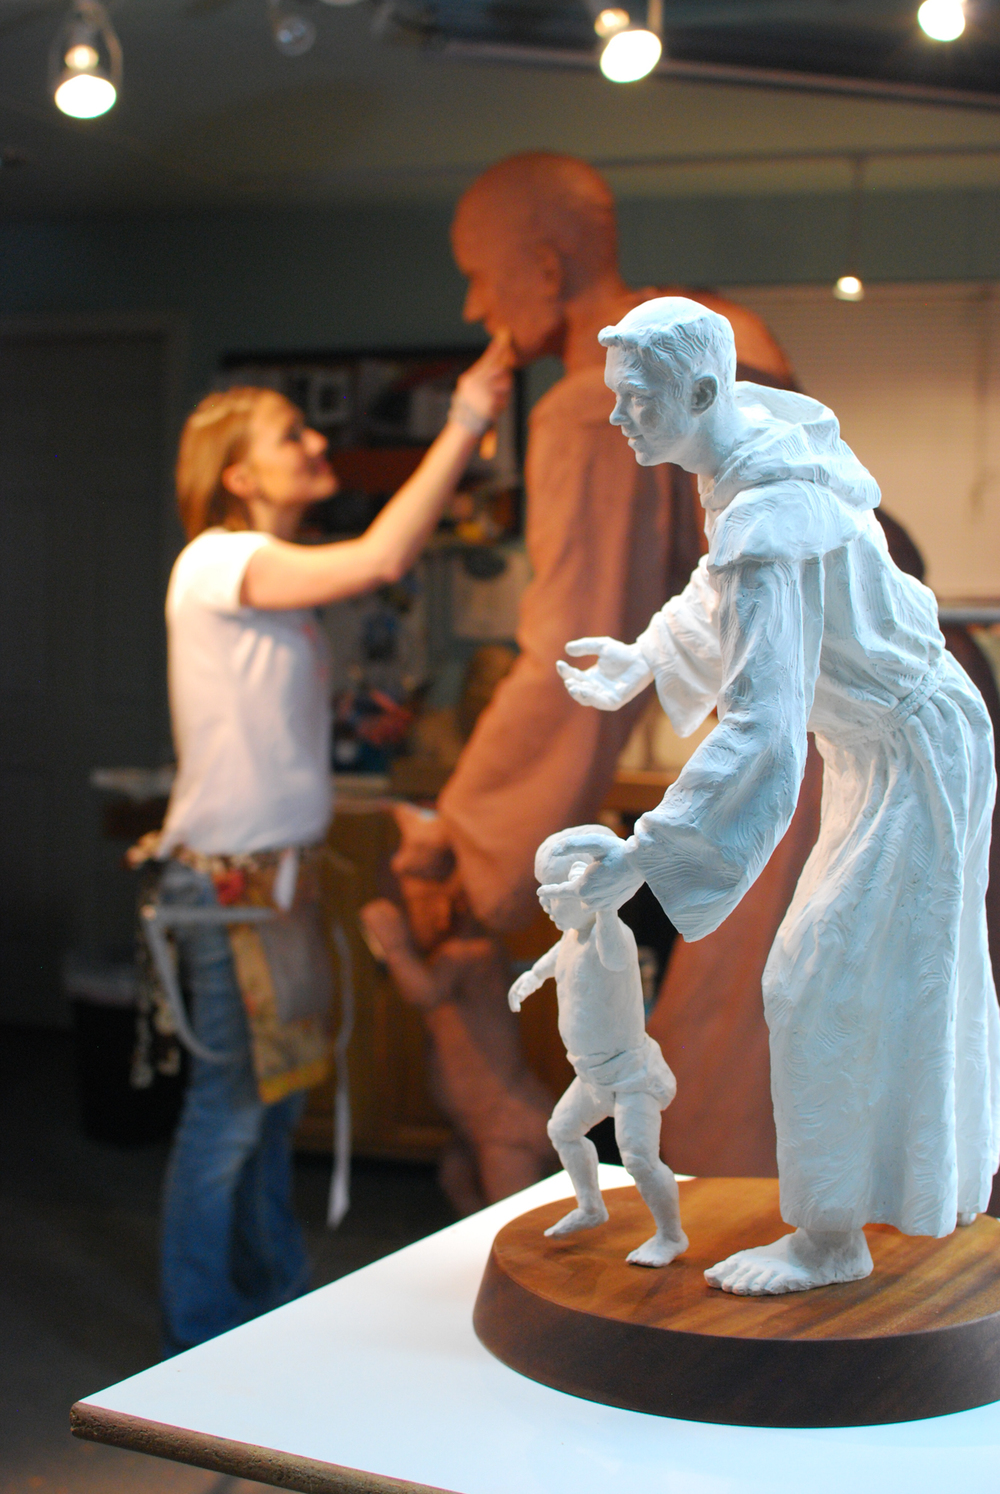 Mardie sculpting, with finished maquette in foreground